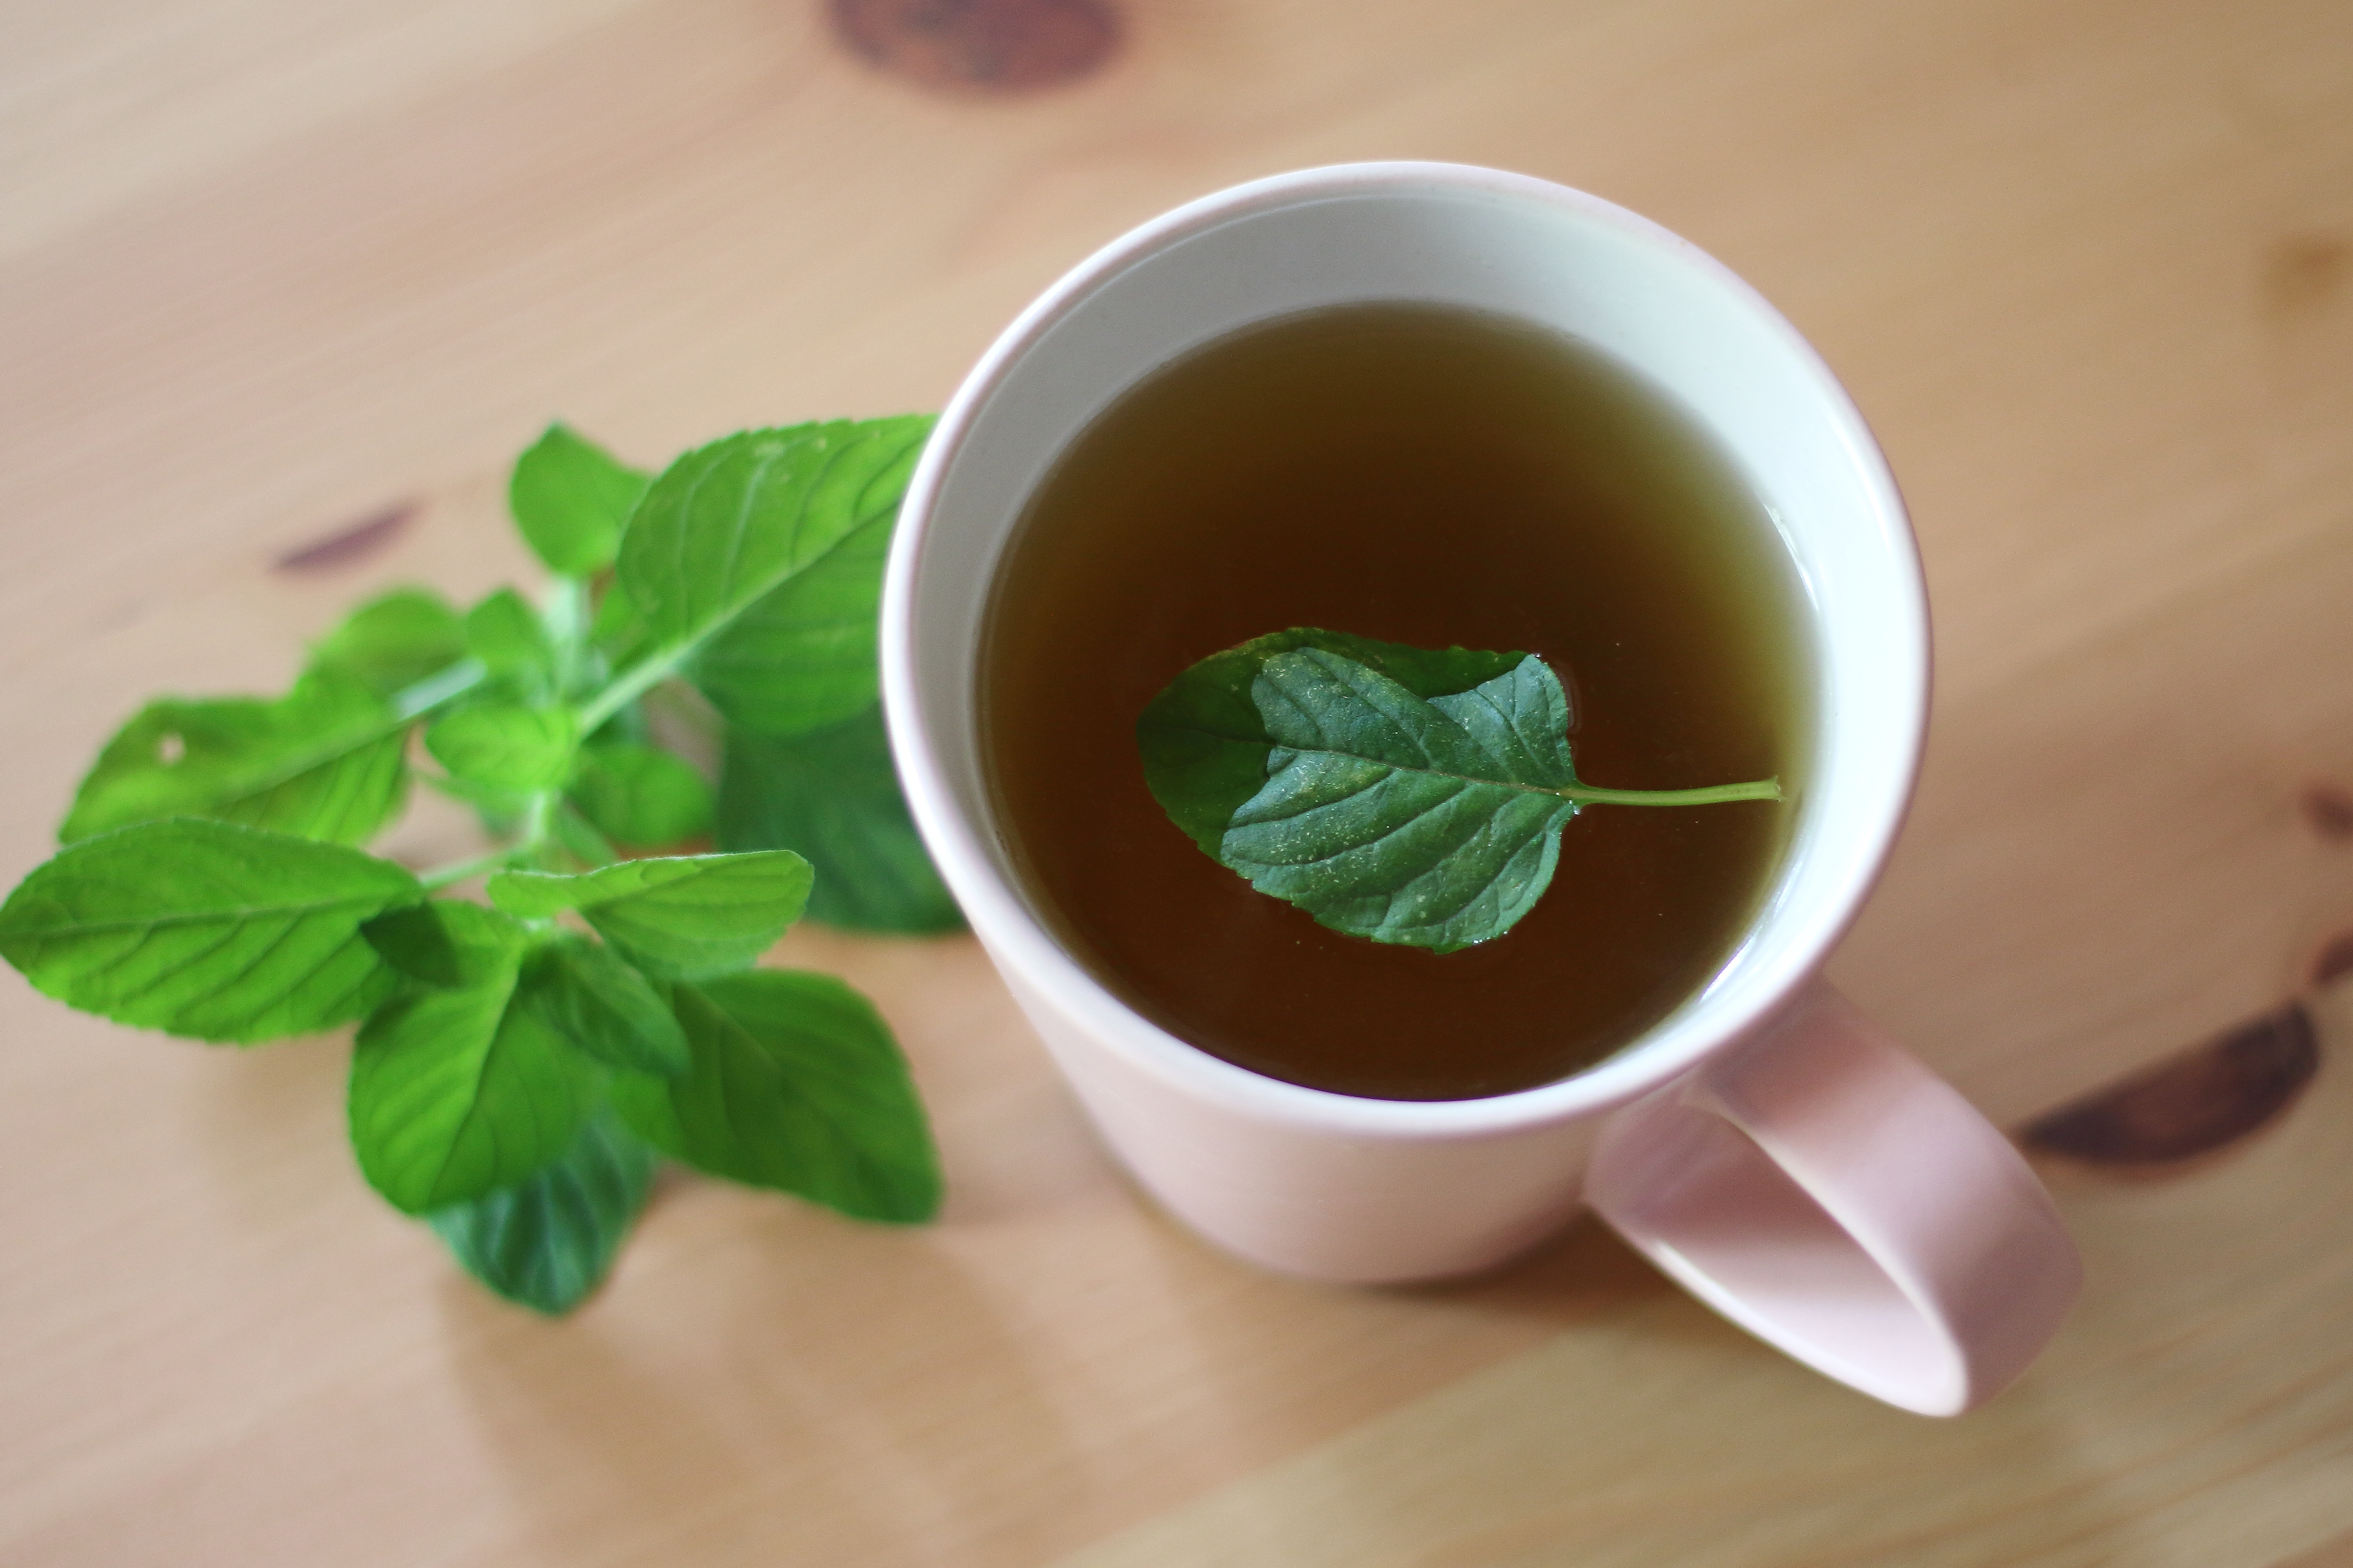 how much green tea to drink to lose weight